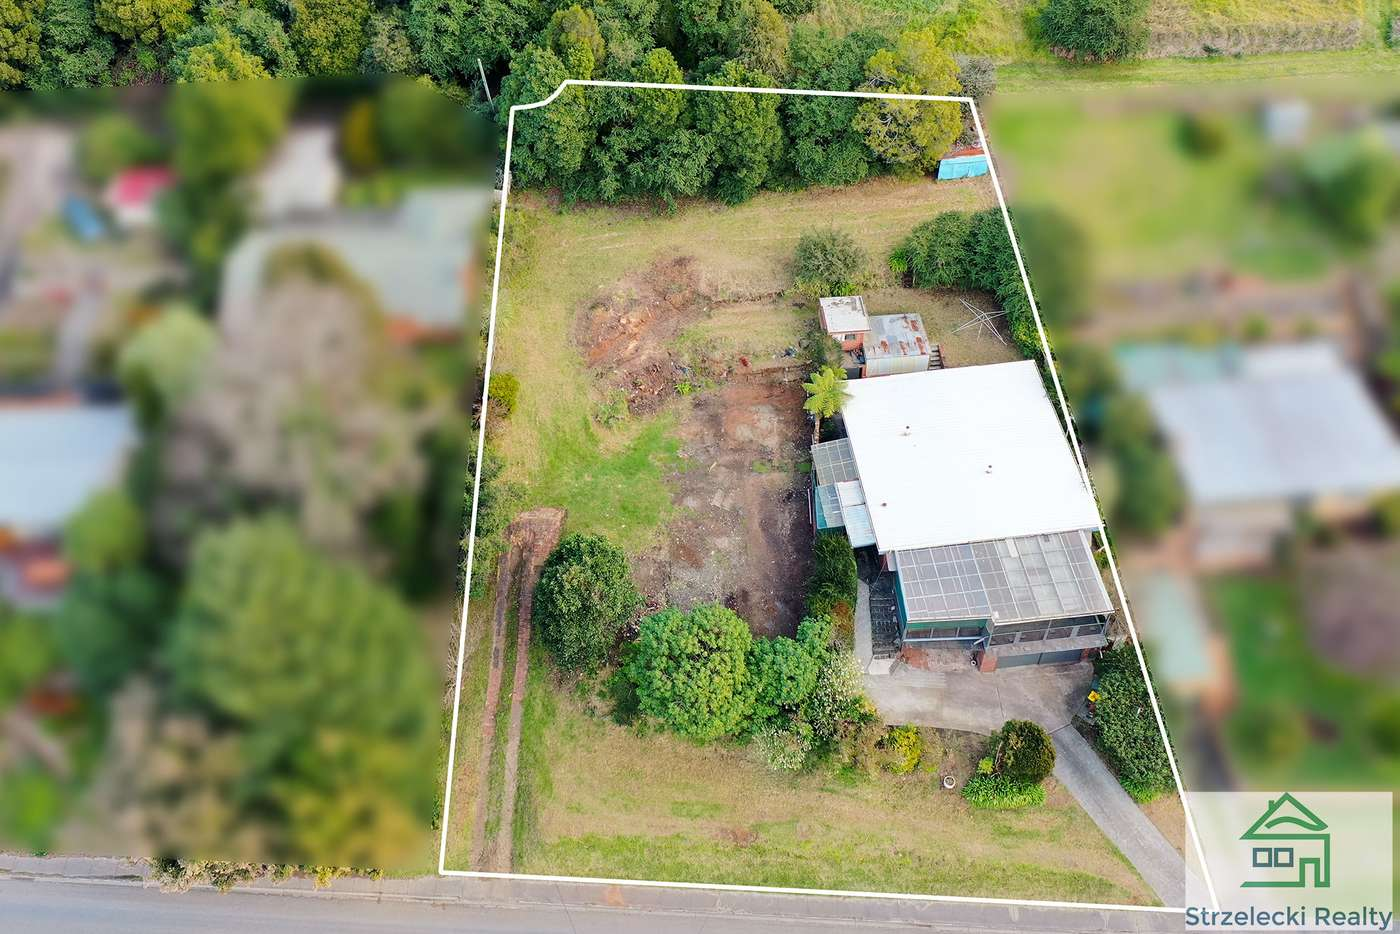 Main view of Homely house listing, 97-99 Thorpdale Rd, Trafalgar VIC 3824